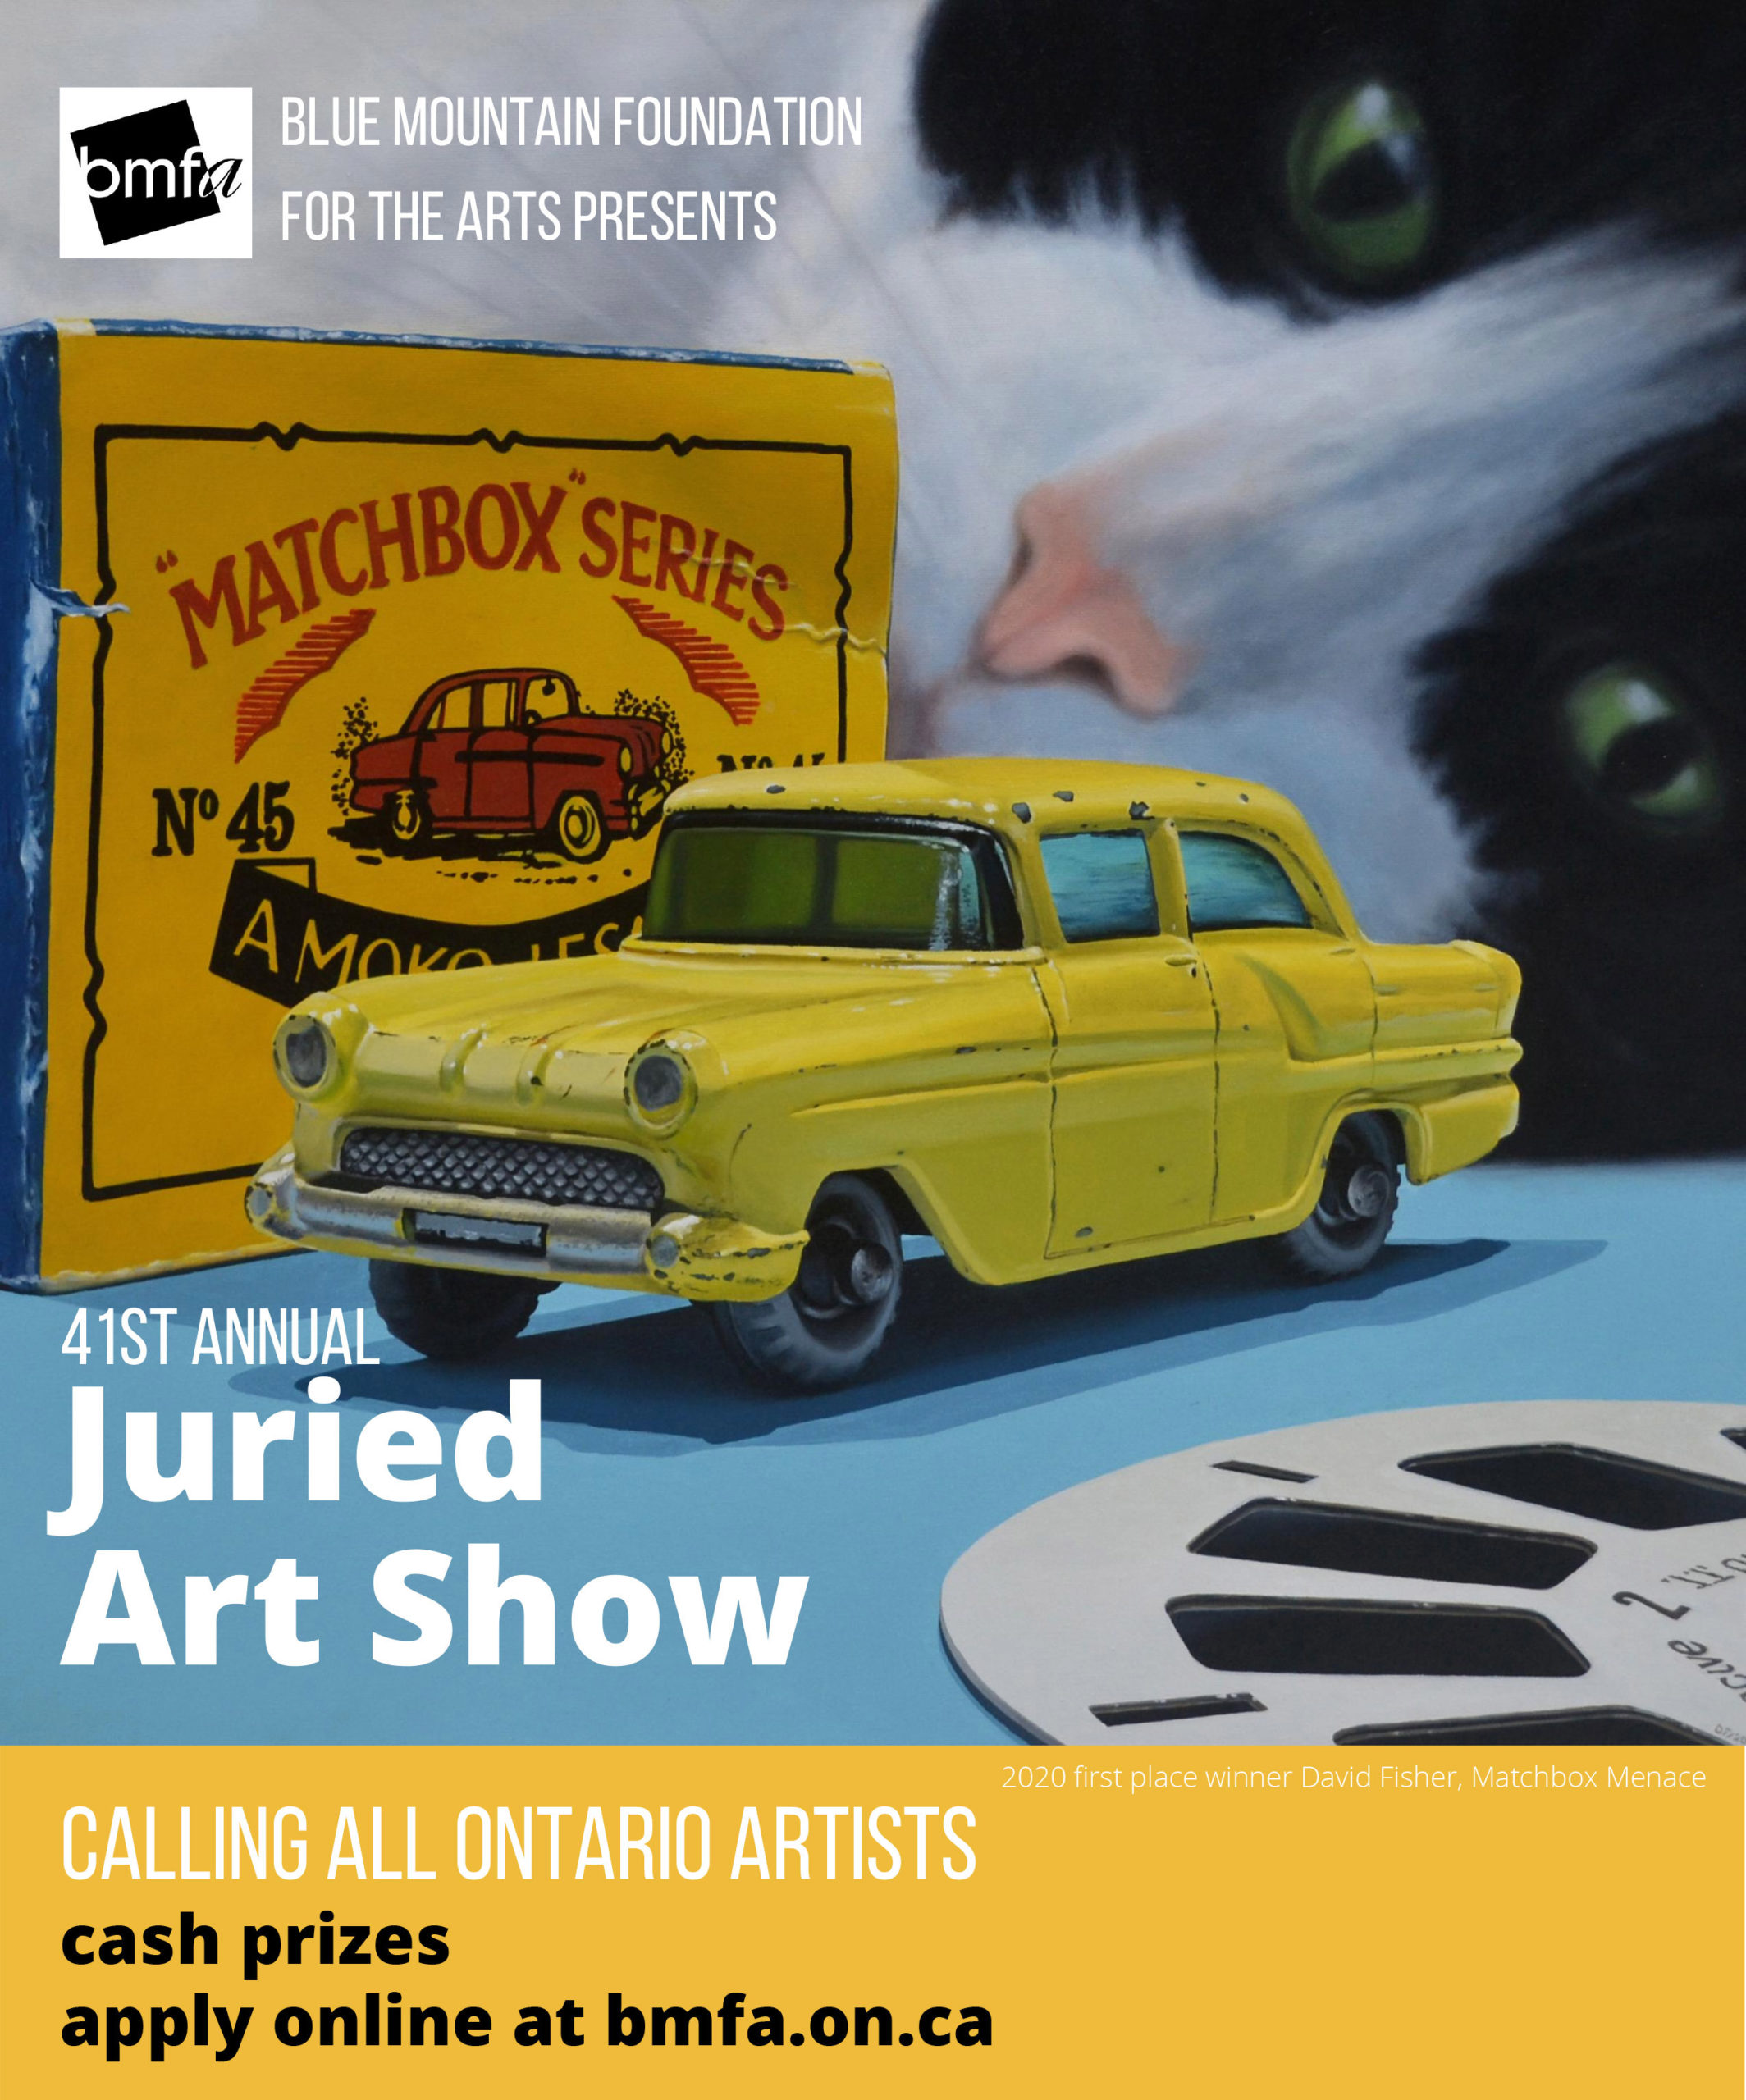 Calling all ontario artists juried art show